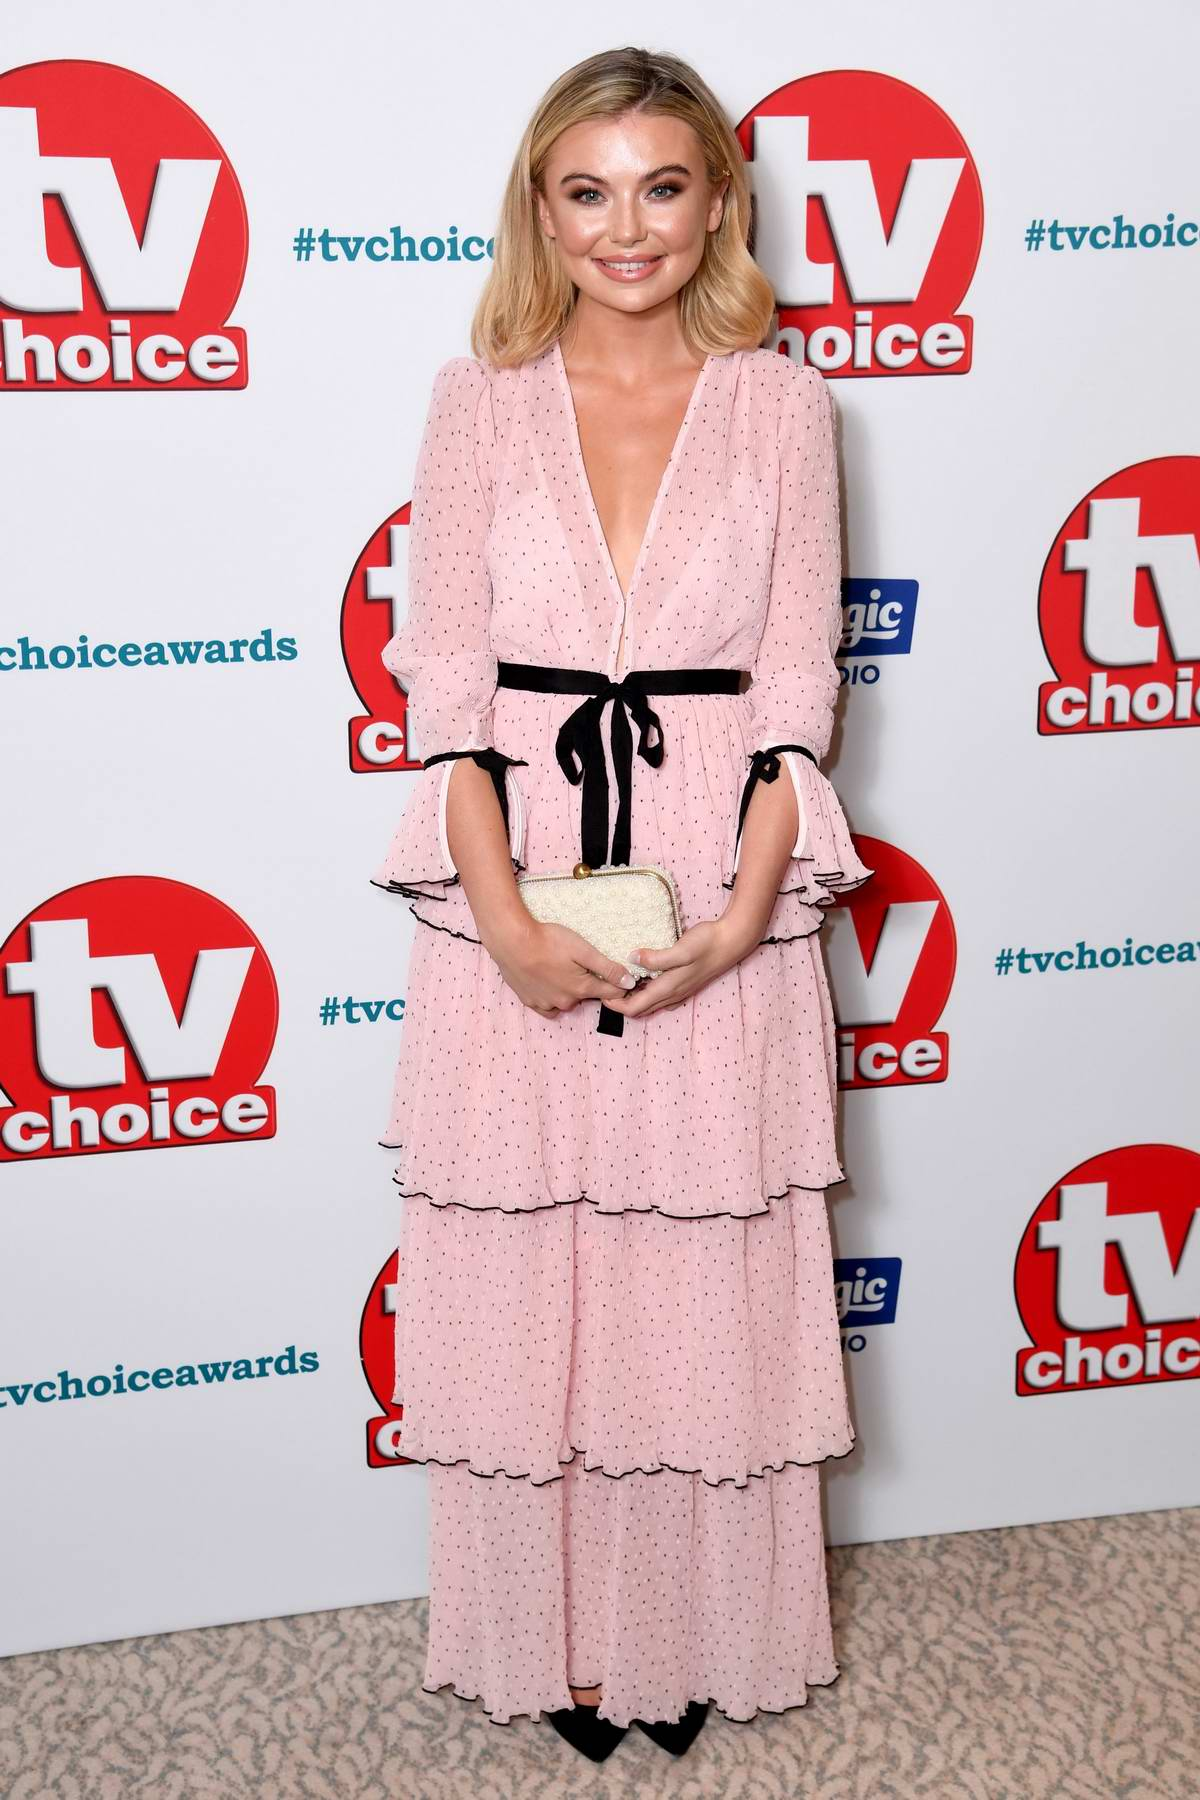 Georgia Toffolo attends The TV Choice Awards 2018 at Dorchester Hotel in London, UK